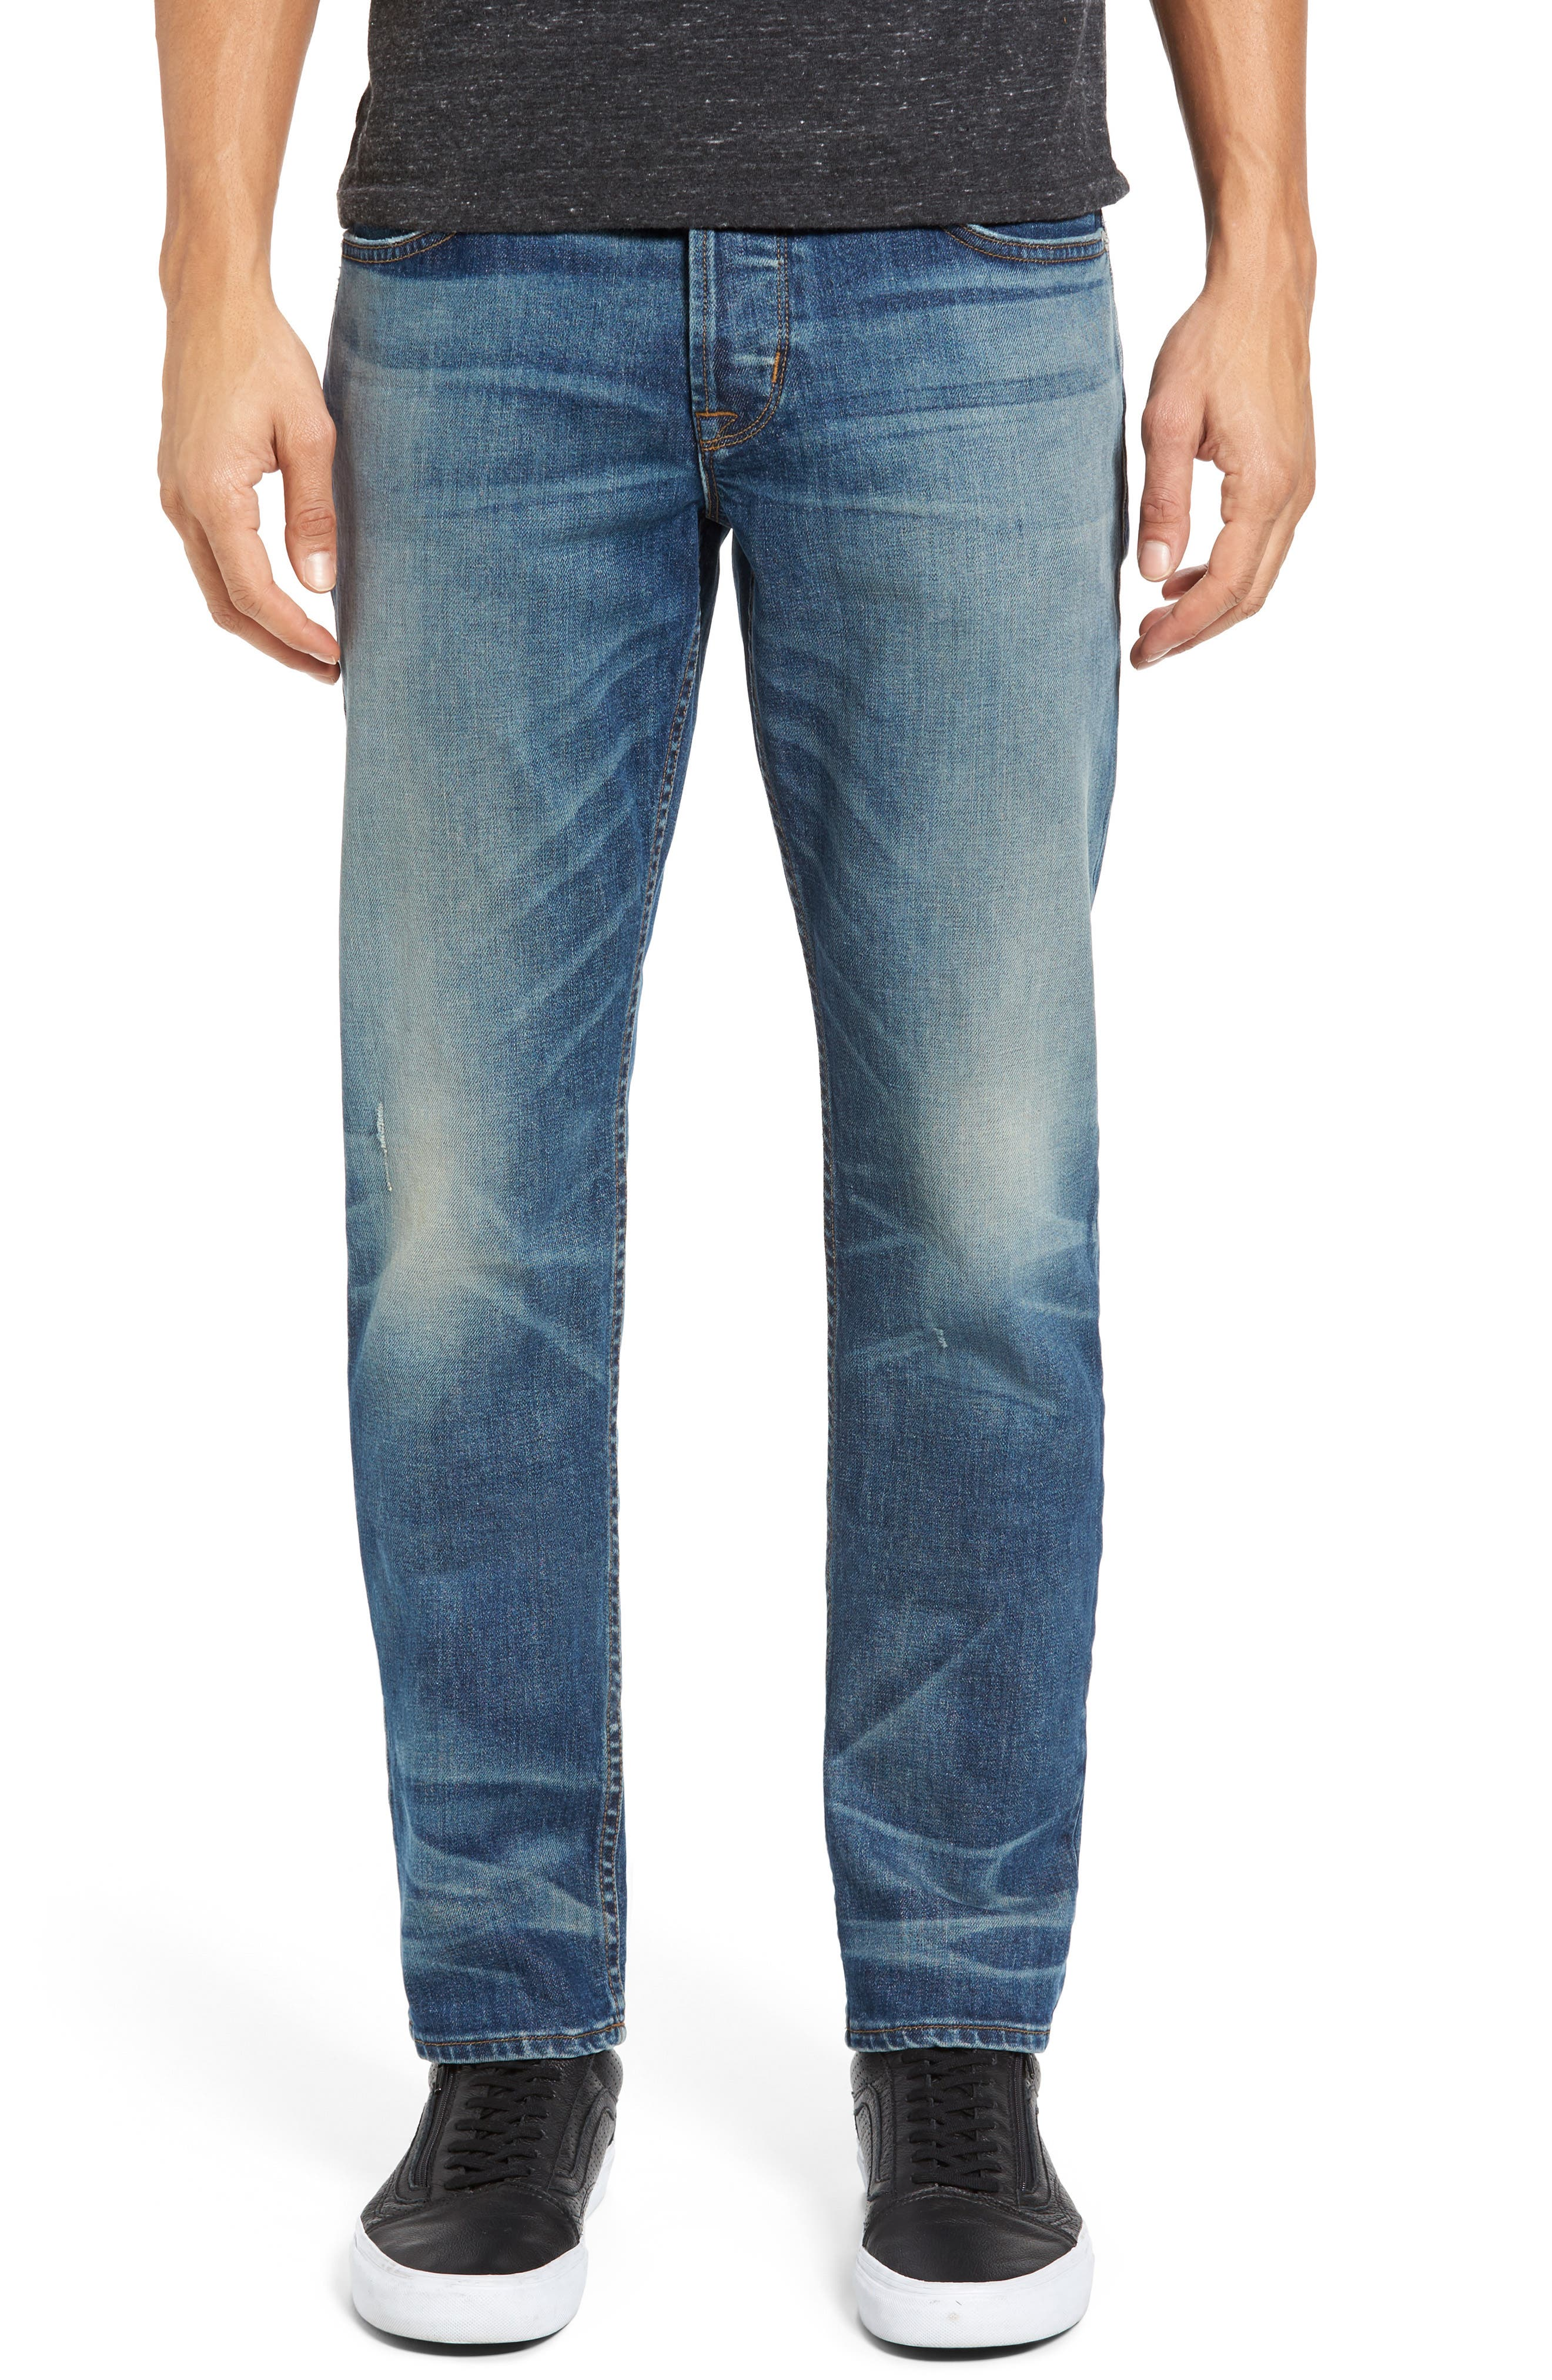 Alternate Image 1 Selected - Hudson Jeans Blake Slim Fit Jeans (Withstand)